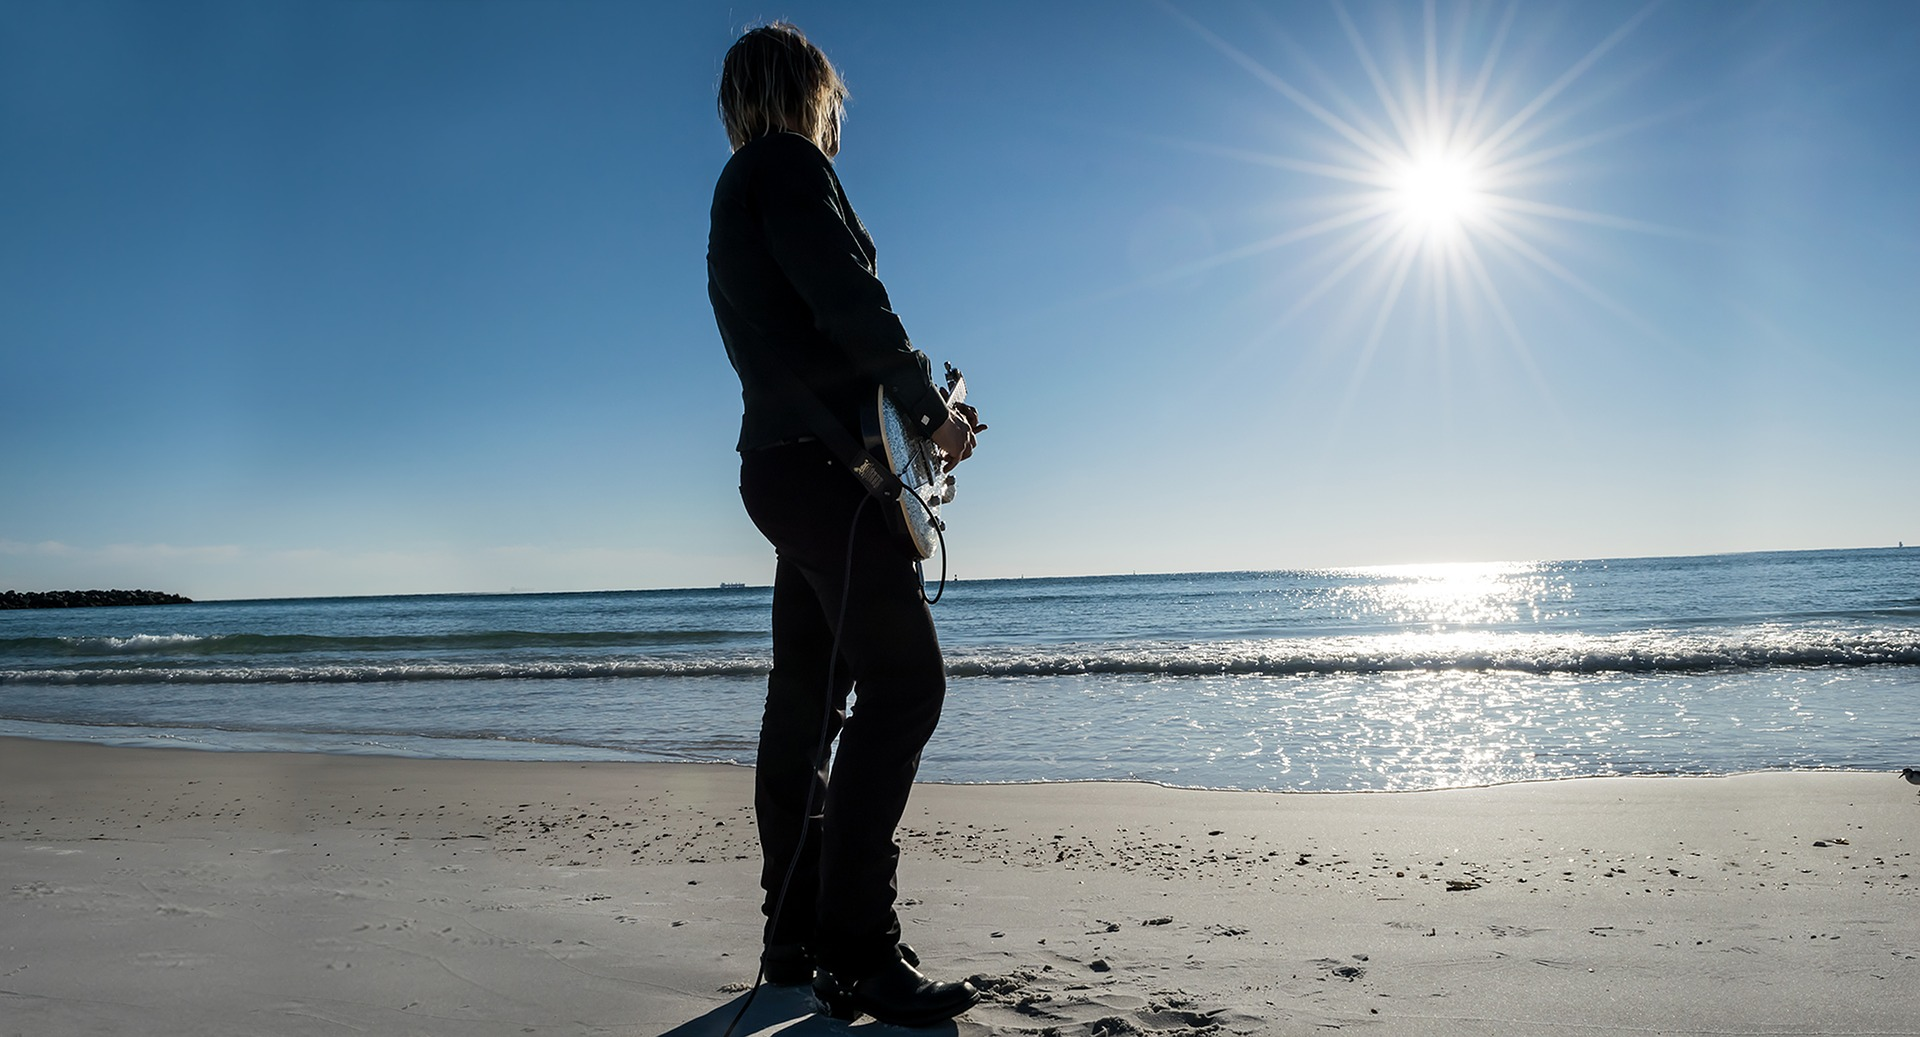 Pixabay guitarist on the beach | Outdoorsy RV Rental Marketplace